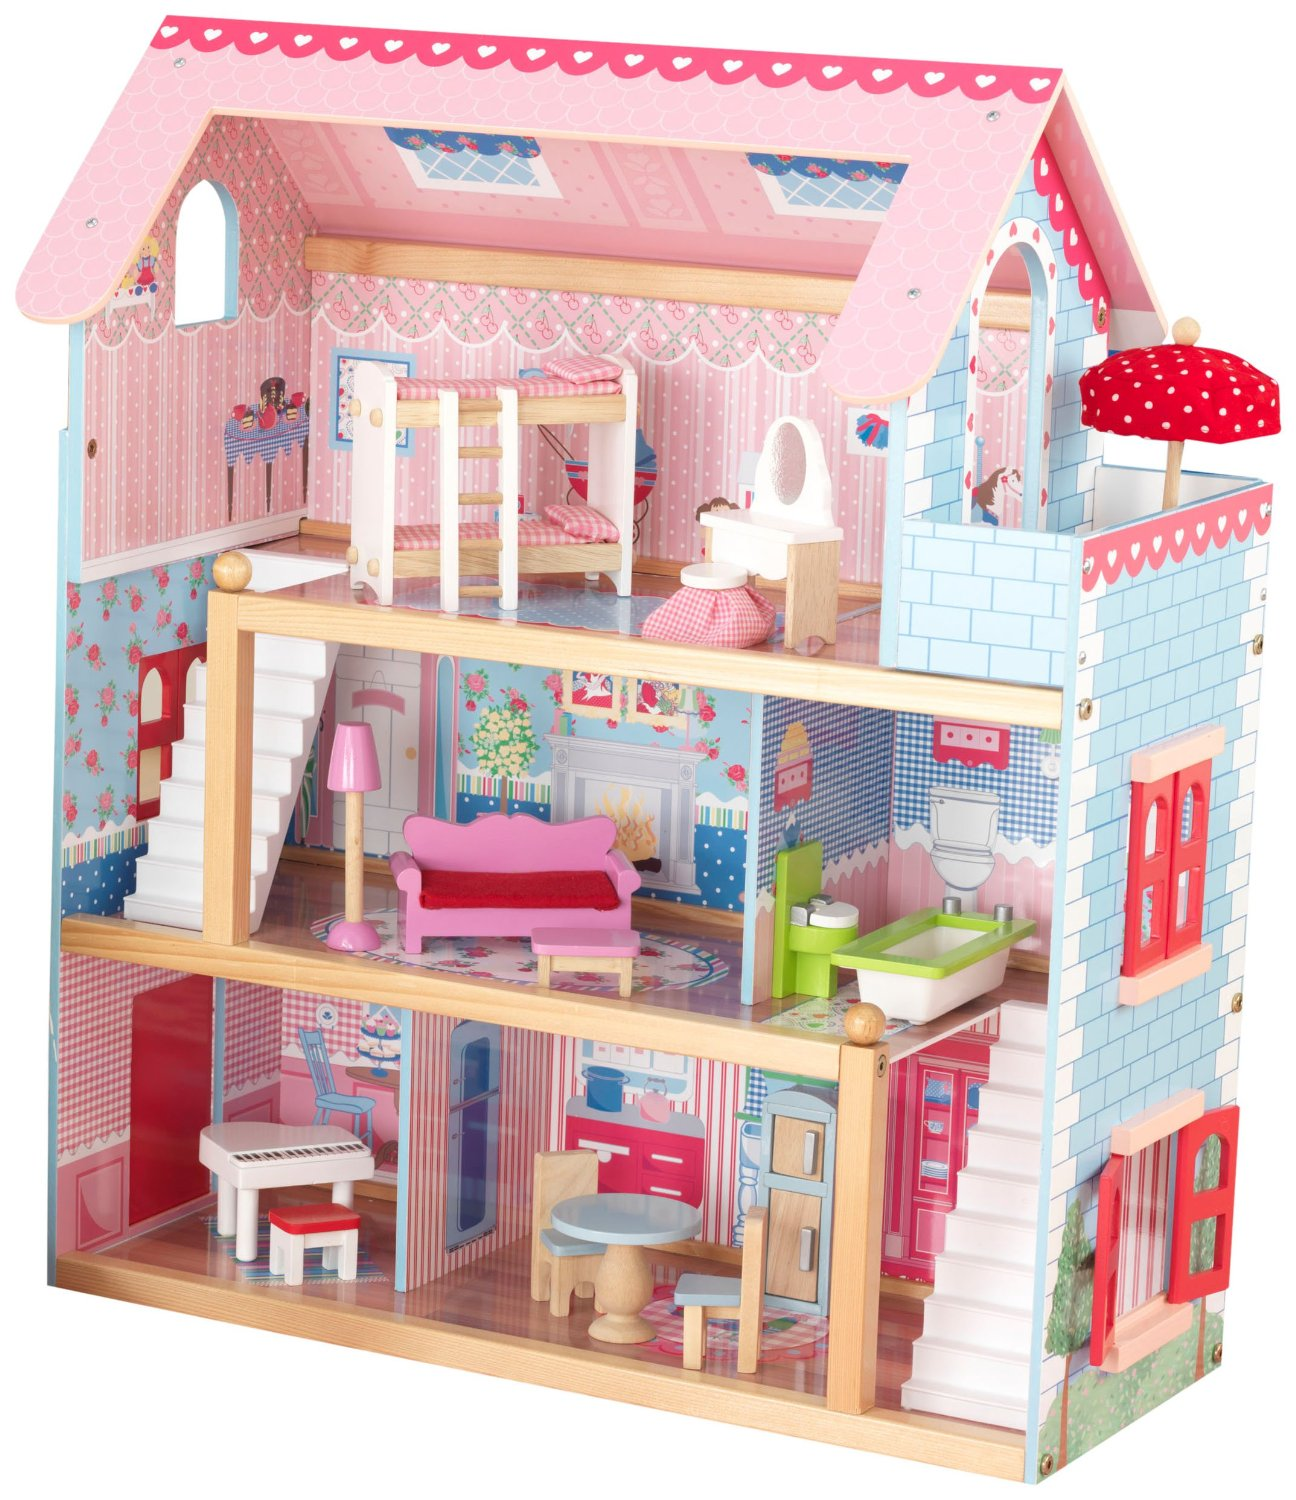 KidKraft Chelsea Wooden Play Dollhouse | 65054